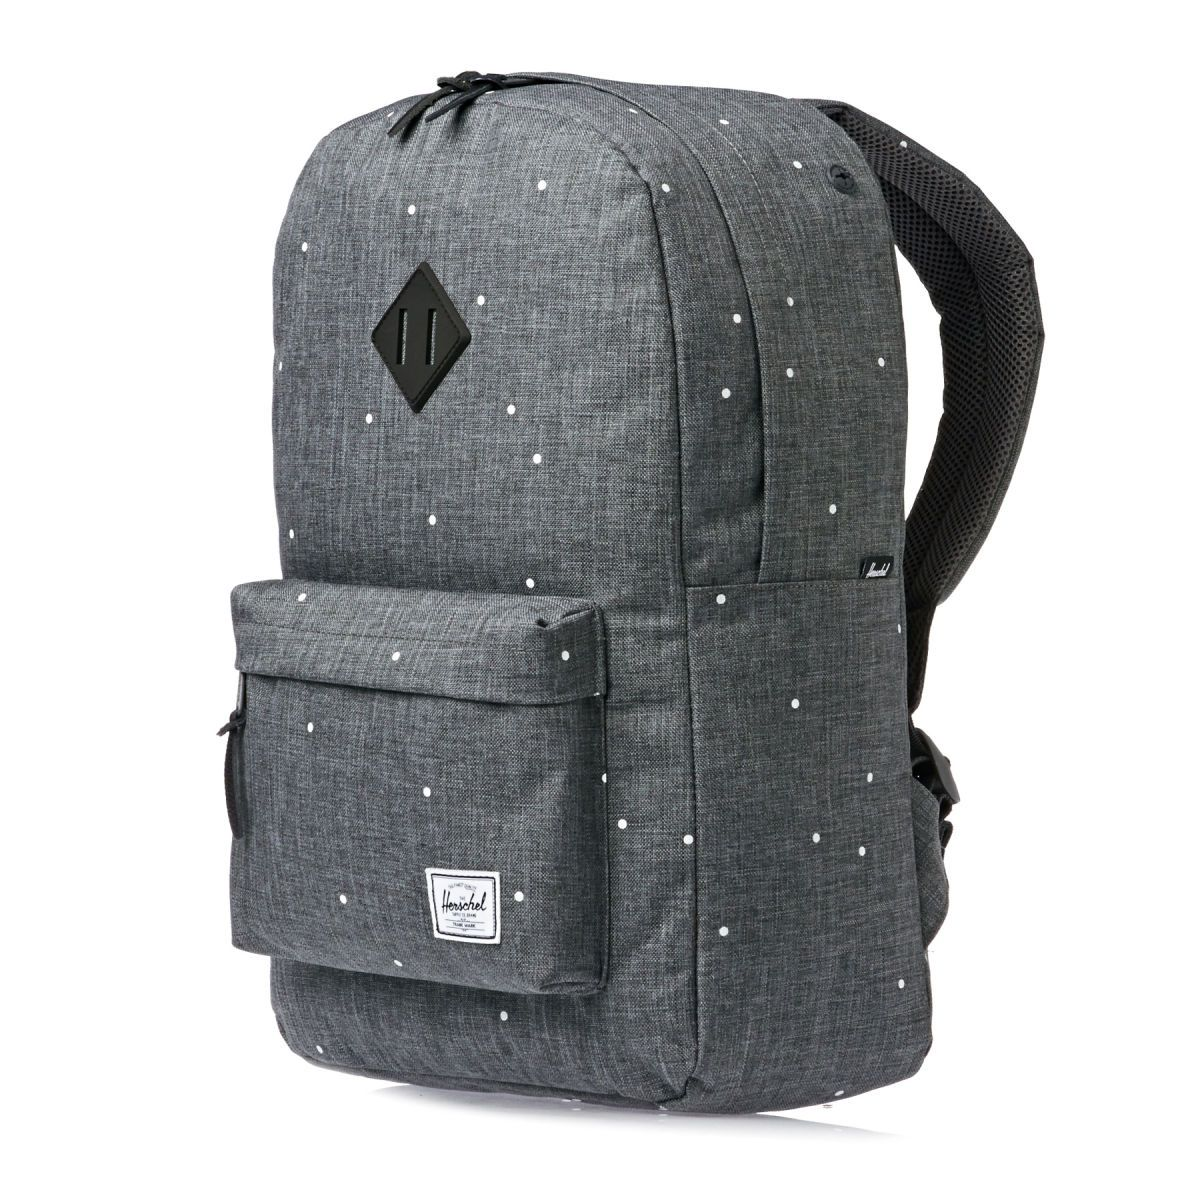 Herschel Heritage Backpack - Scattered Charcoal rubber   Because I ... 261cdad601